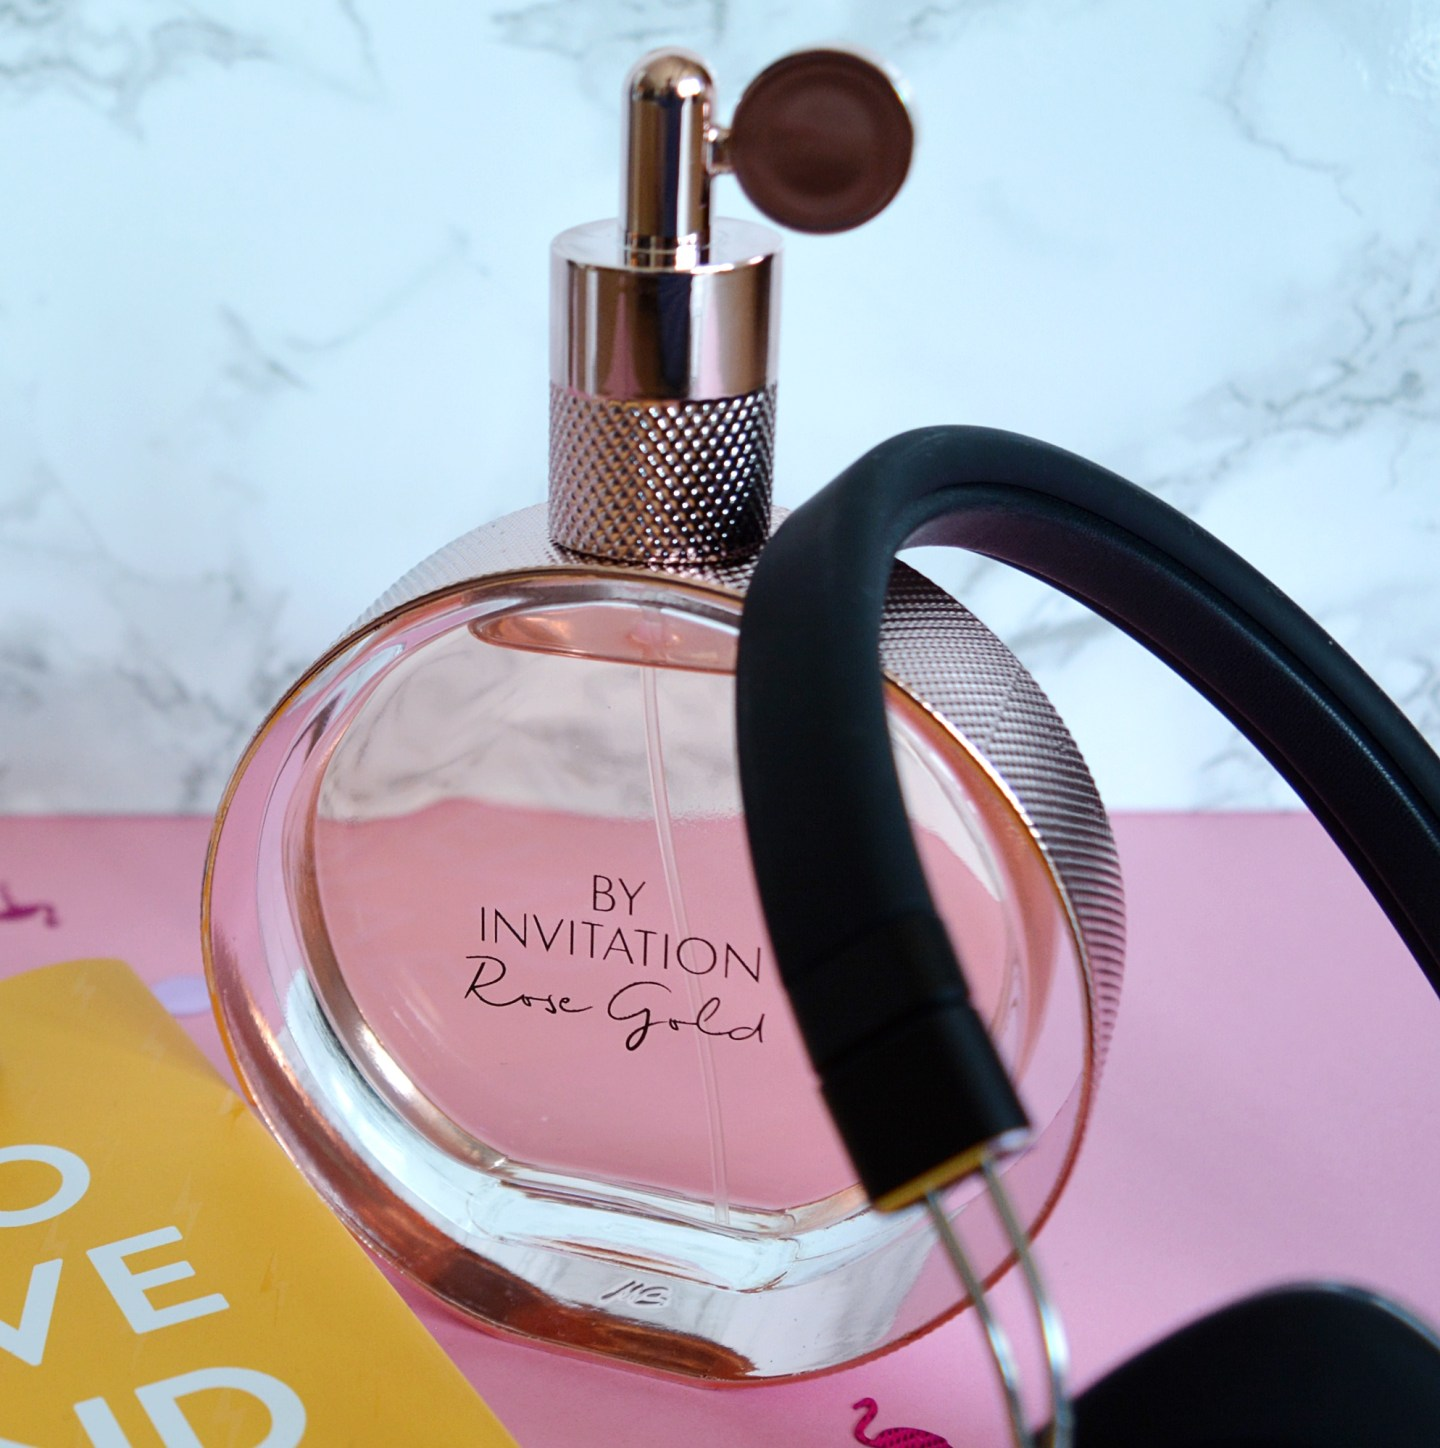 Michael Bublé 'By Invitation Rose Gold' - new perfume obsession! Feminine and sweet, perfect fragrance for summer.